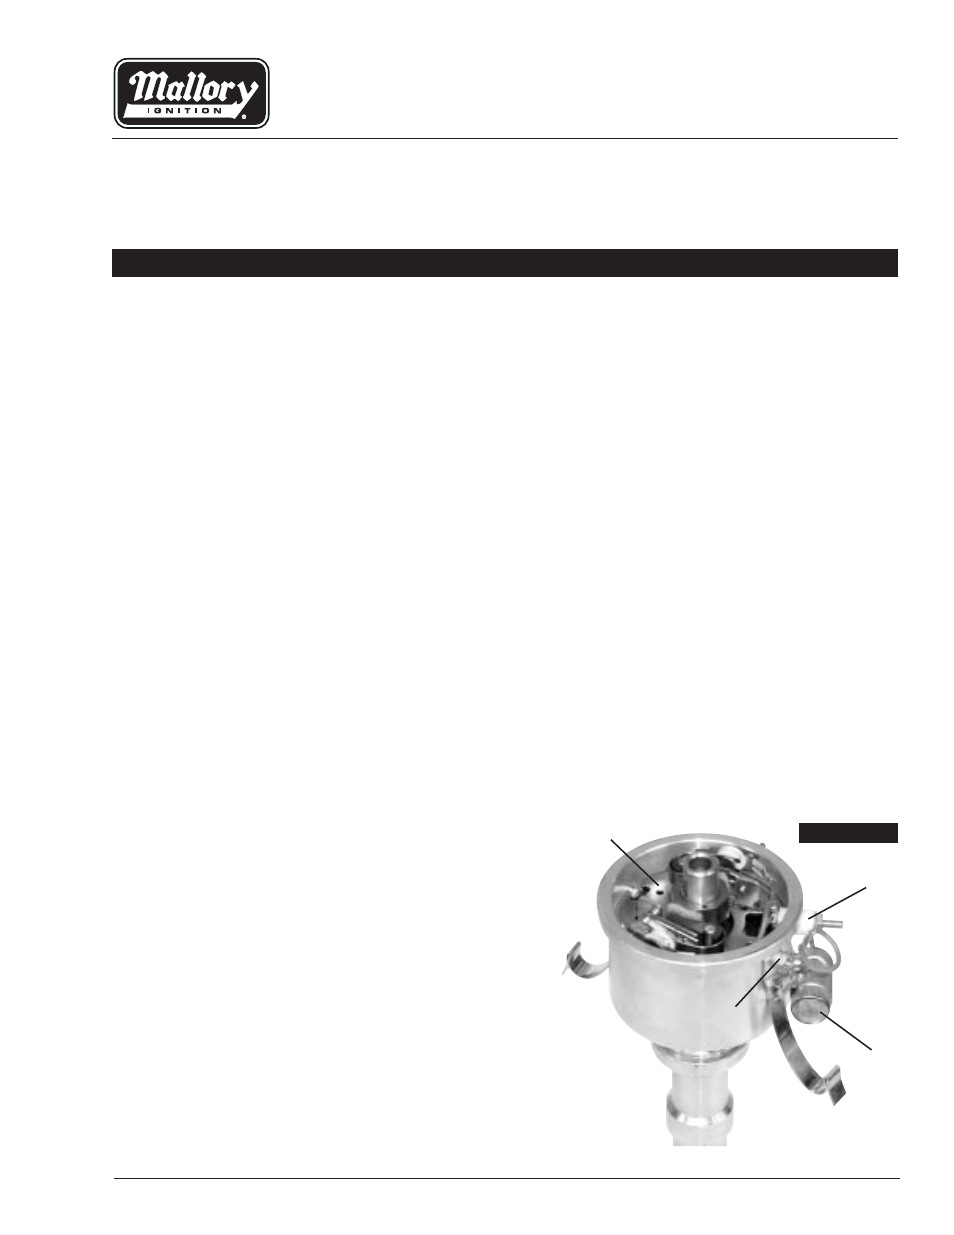 Mallory Ignition Unilite Electronic Breakerless Conversion Troubleshooting Kit 561 562 563 User Manual 4 Pages Also For